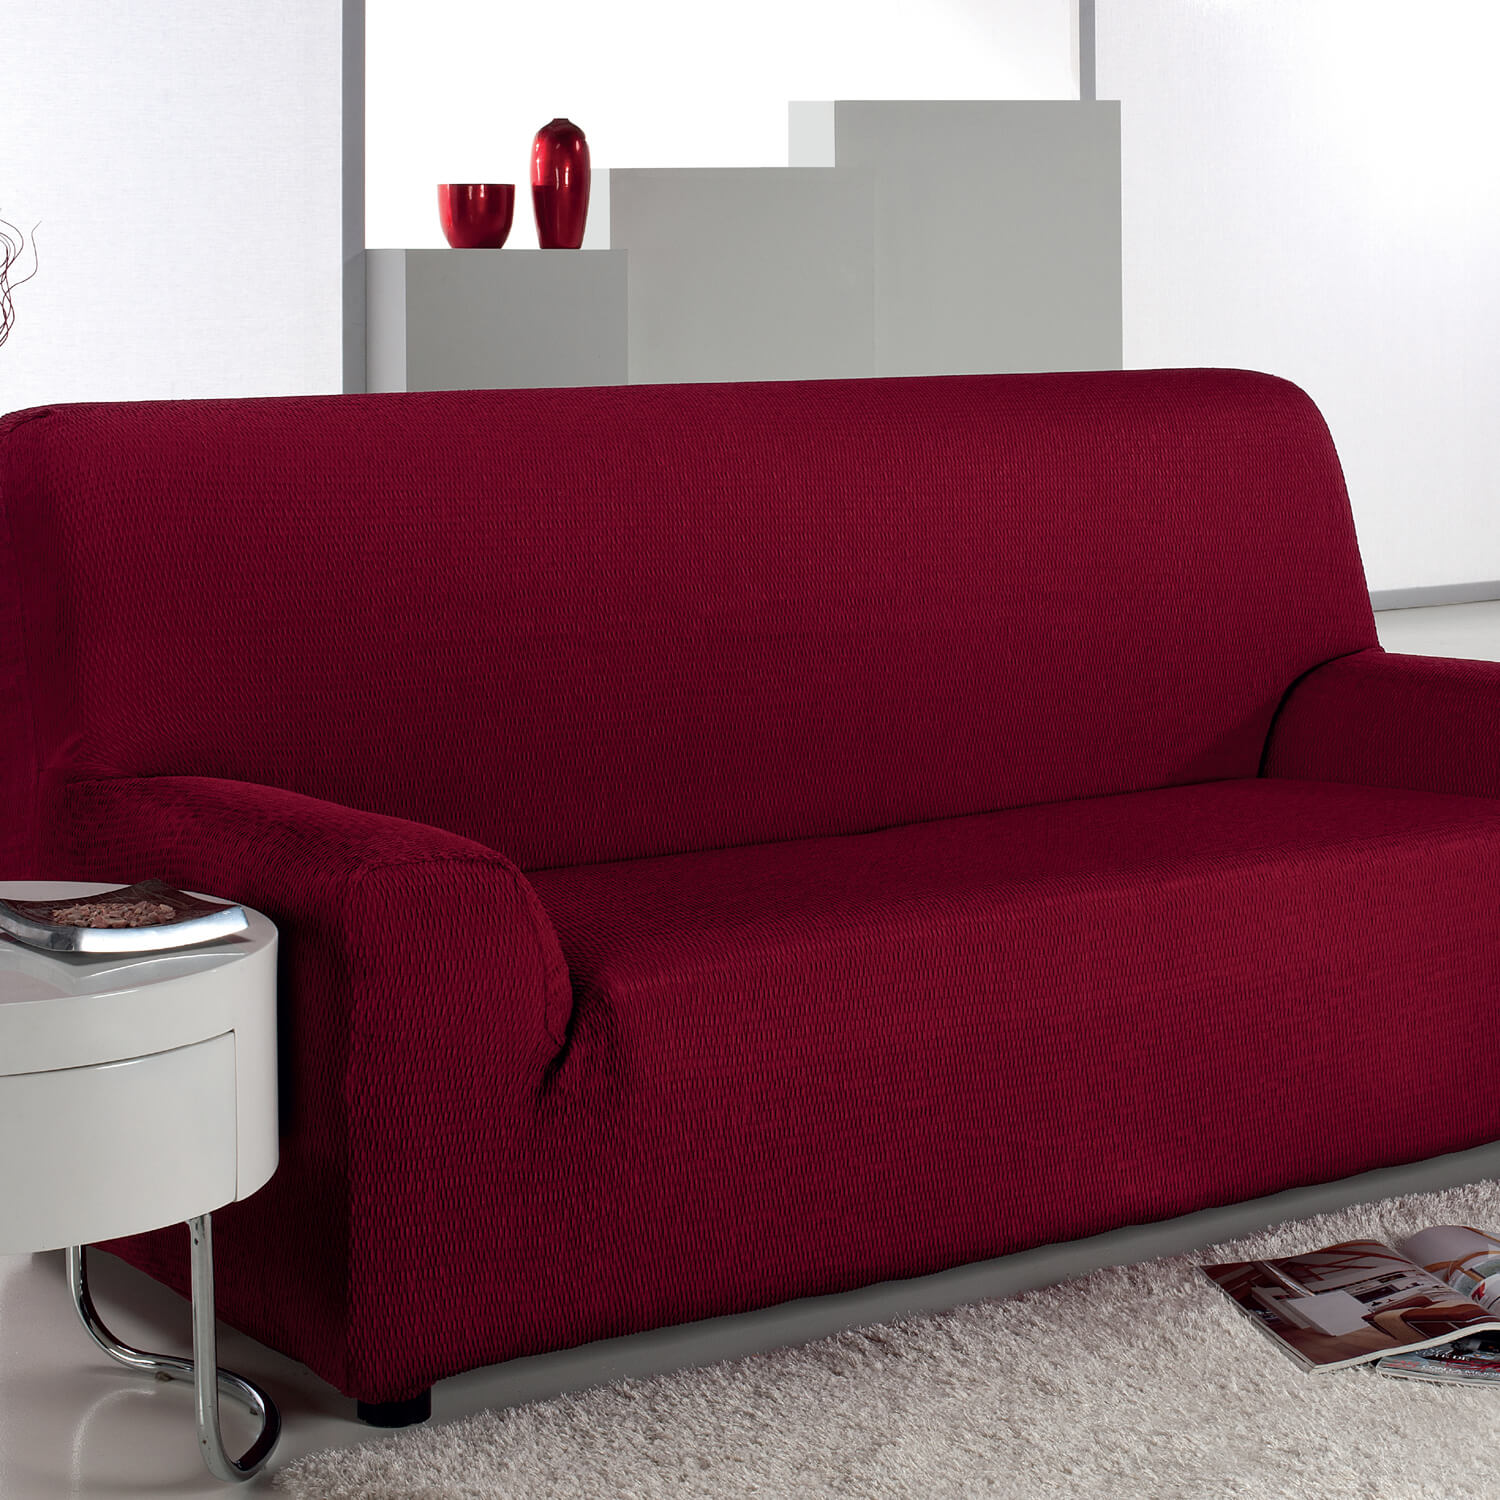 Easystrech 2 Seater Sofa Cover